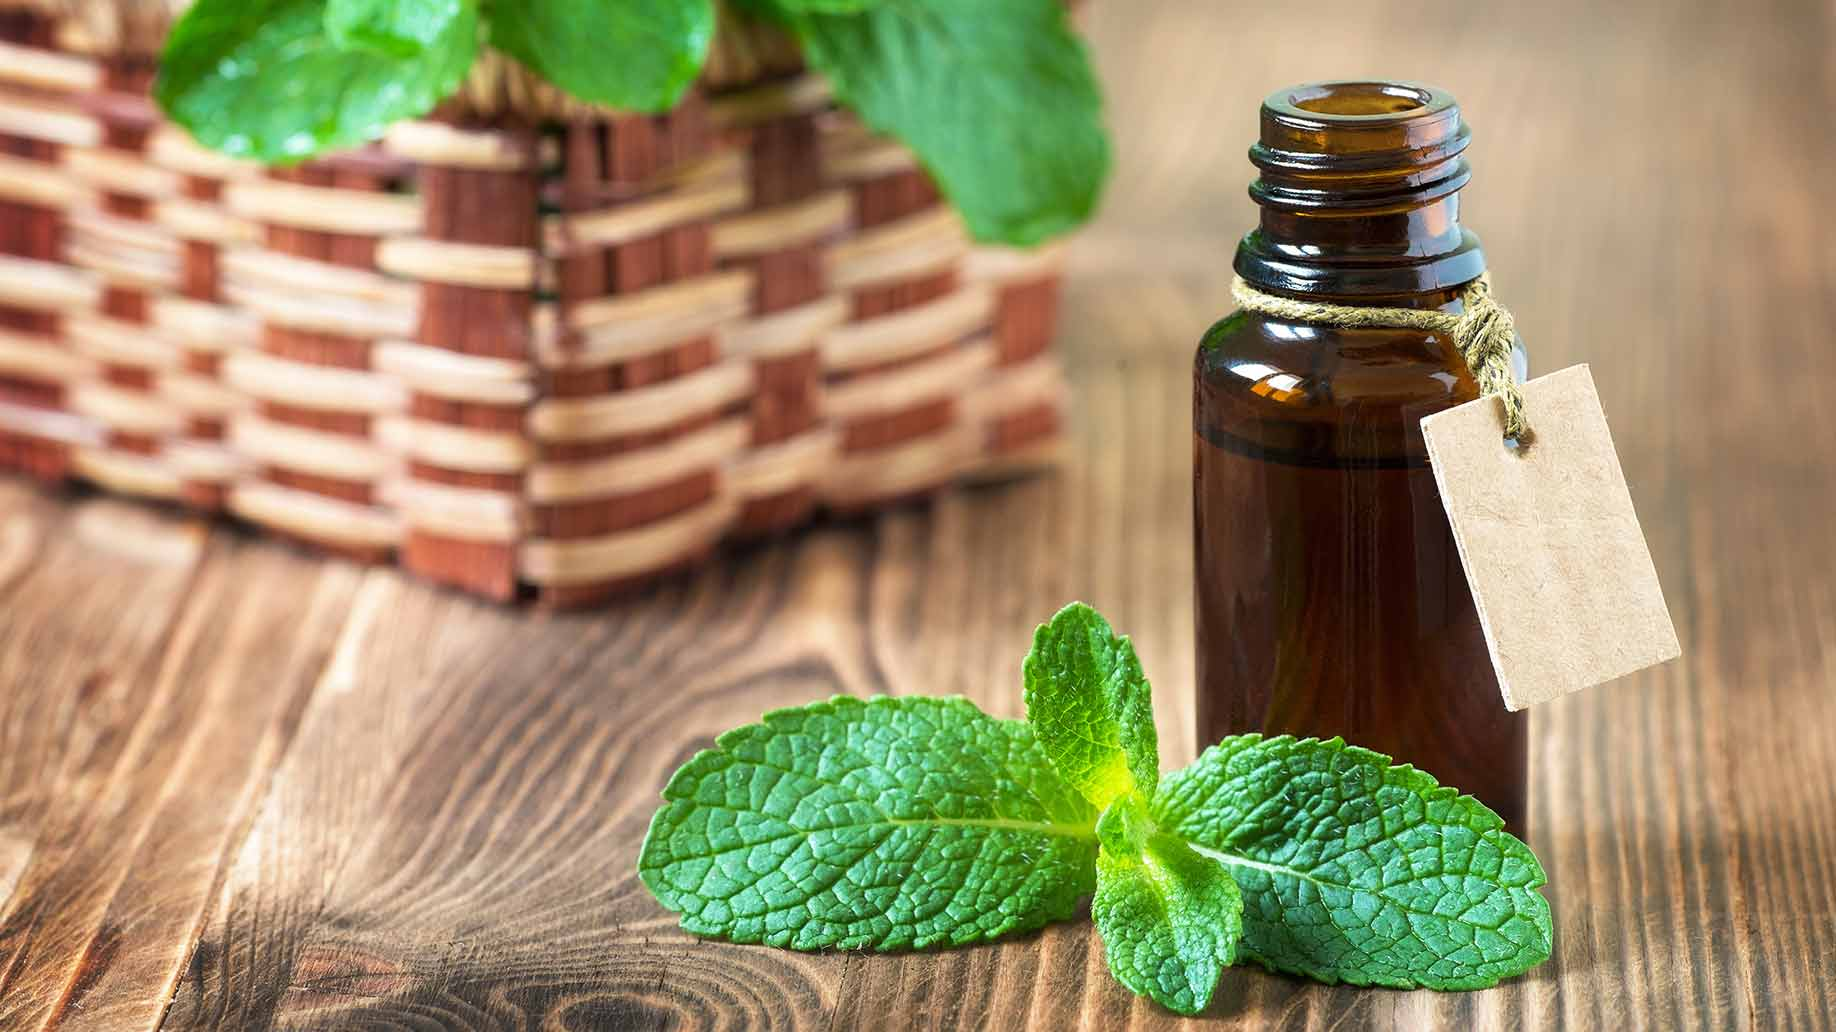 peppermint oil aromatherapy leaves increase boost energy levels natural remedies.